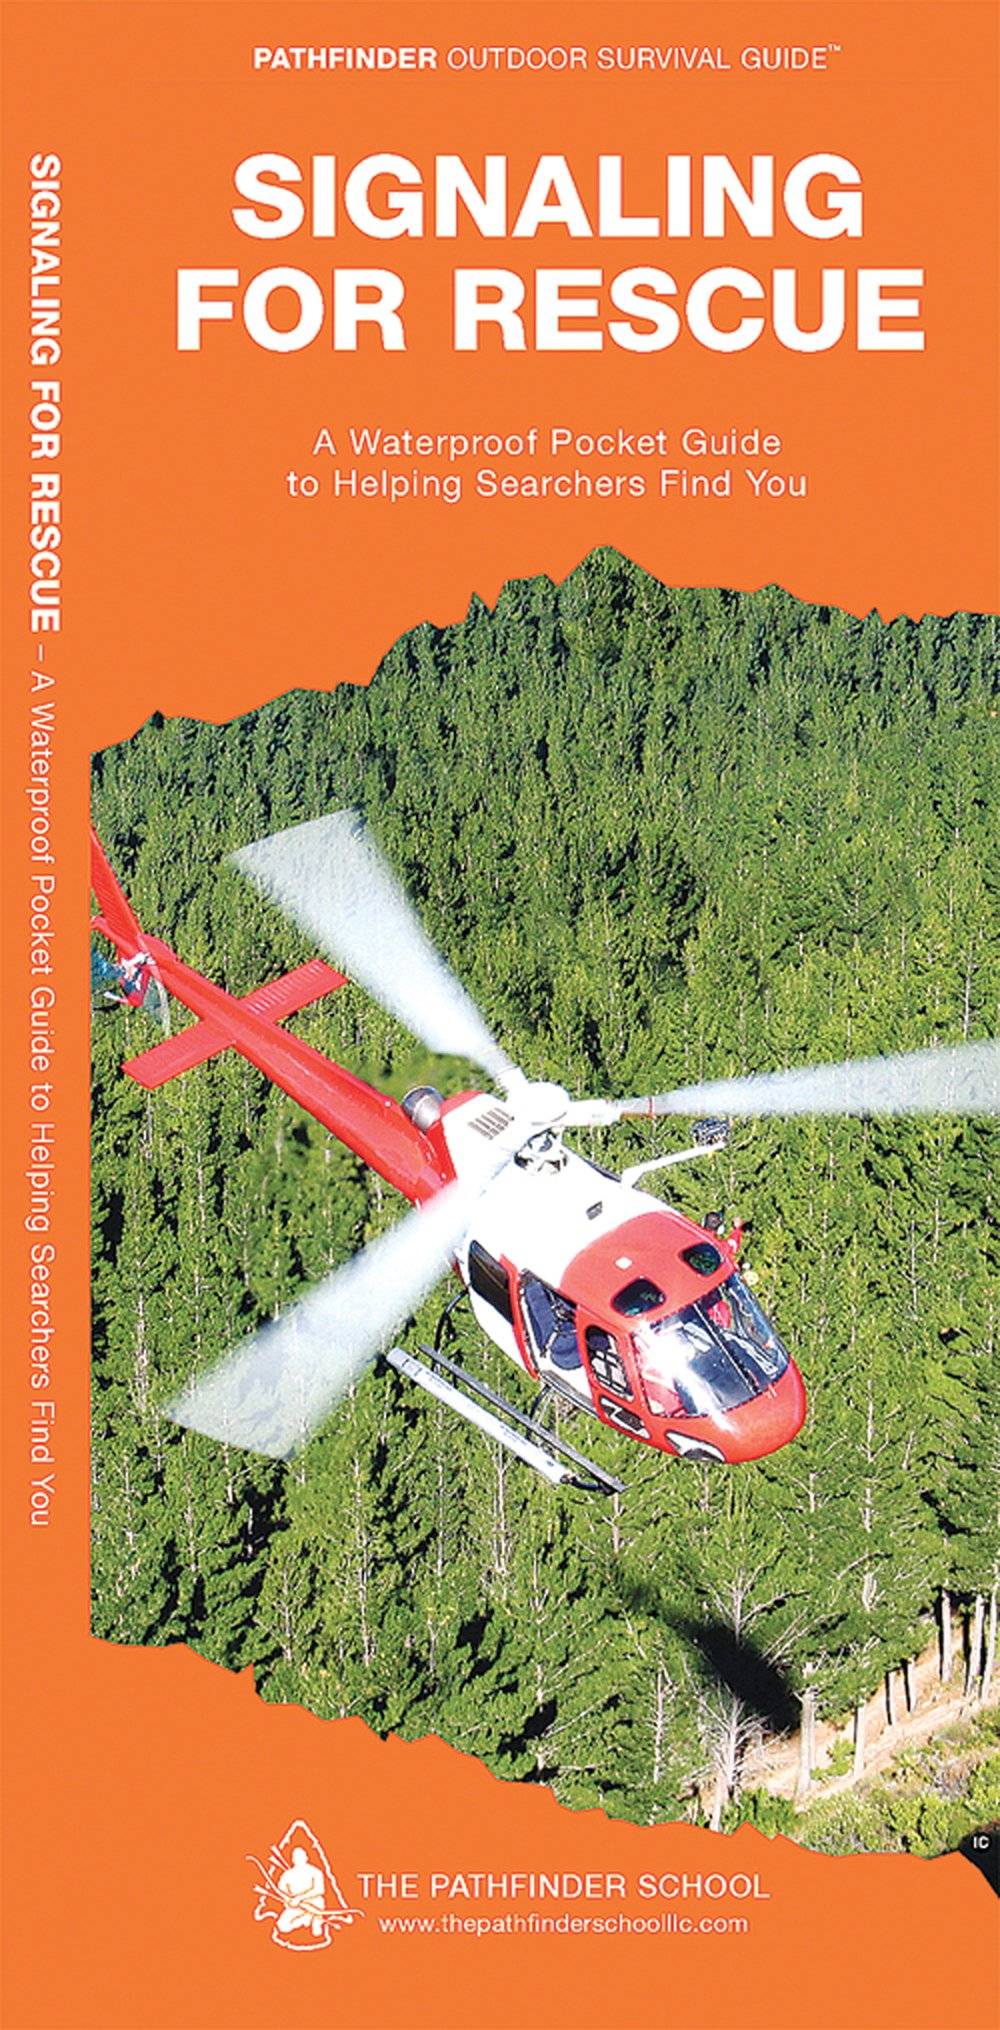 Signaling for Rescue (Pathfinder Outdoor Survival Guide™)